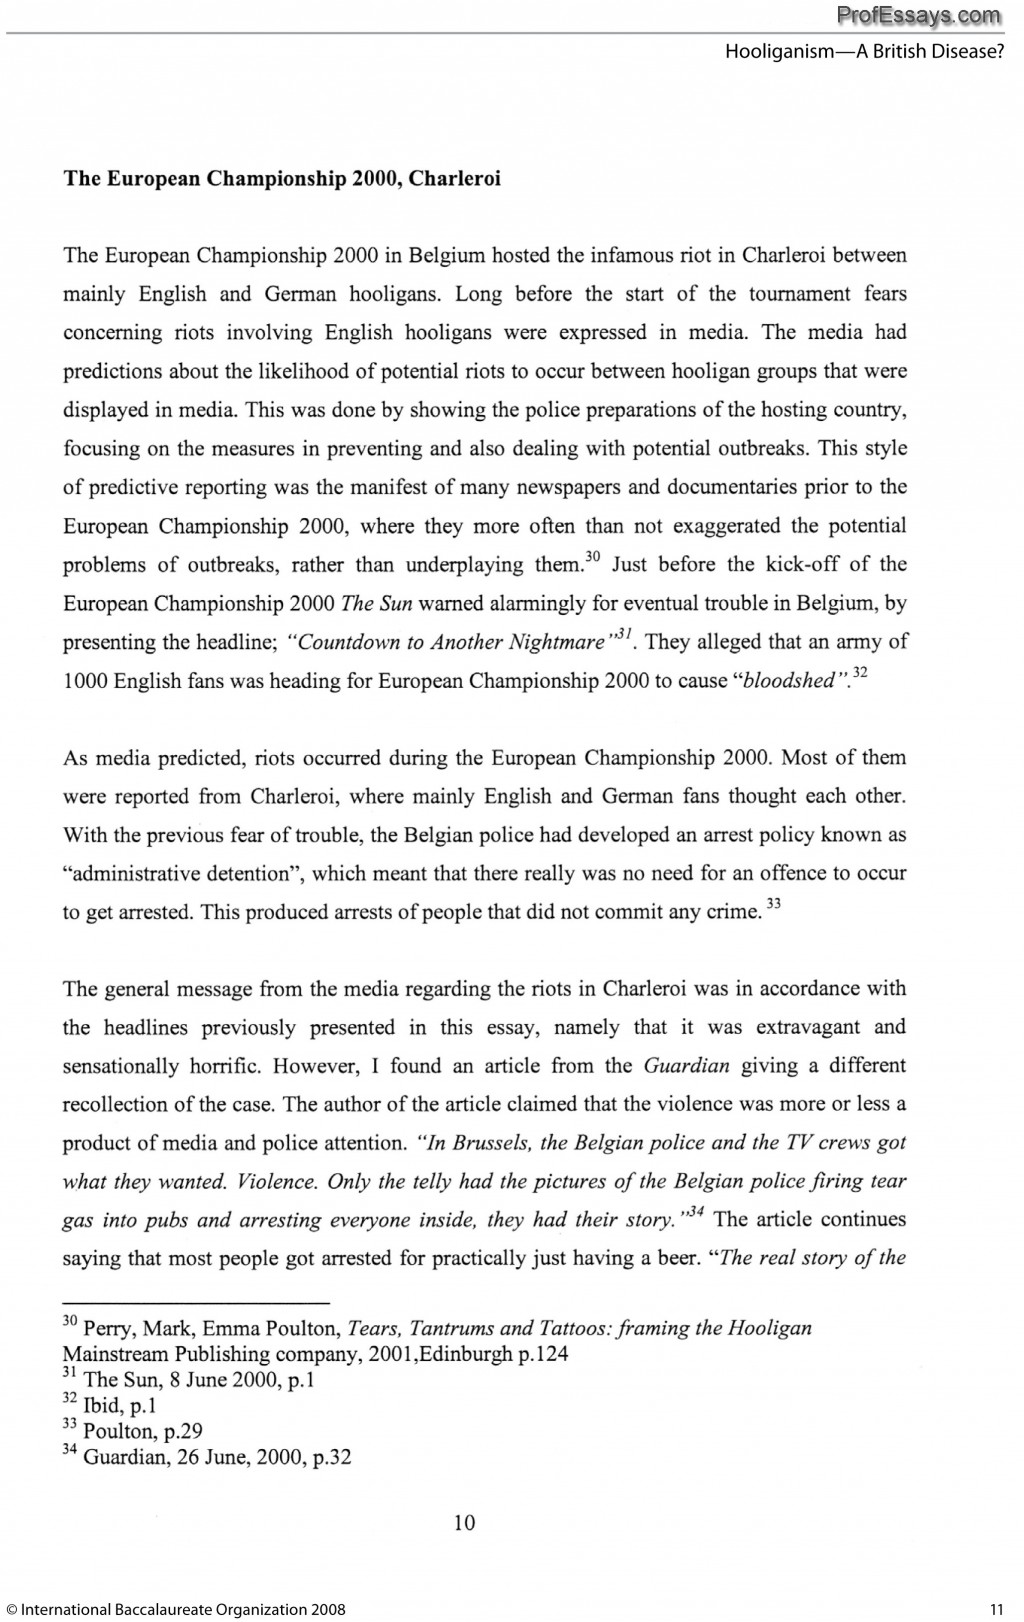 004 Free Write Essay Ib Extended Sample Archaicawful Writing Prompts Examples Website To Essays Large